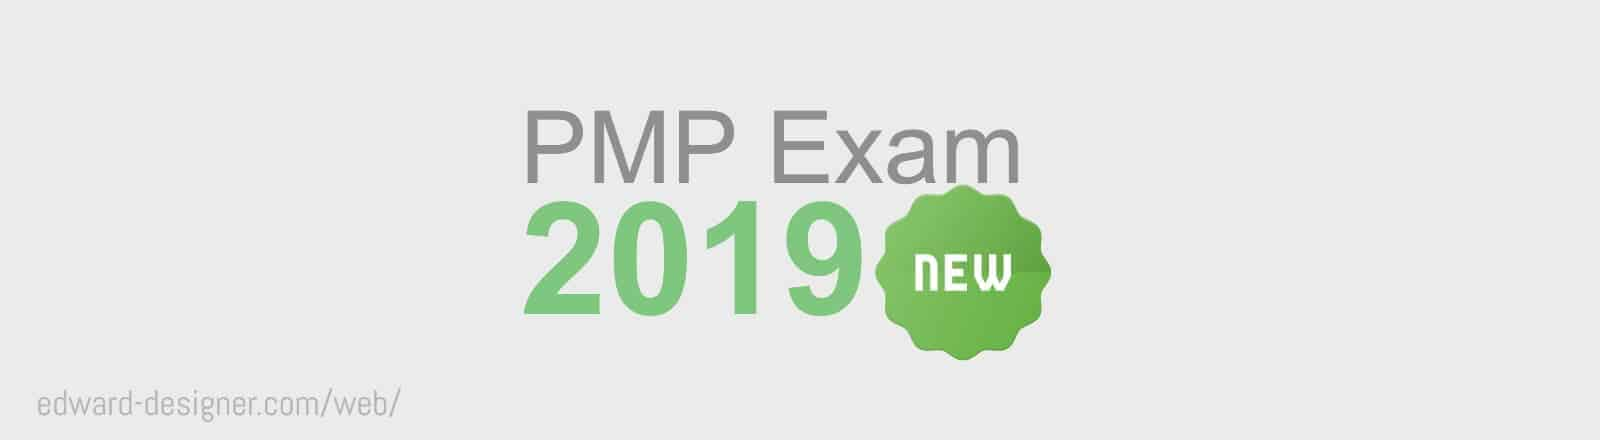 Major Changes to New PMP Exam in Jul 2020 Explained